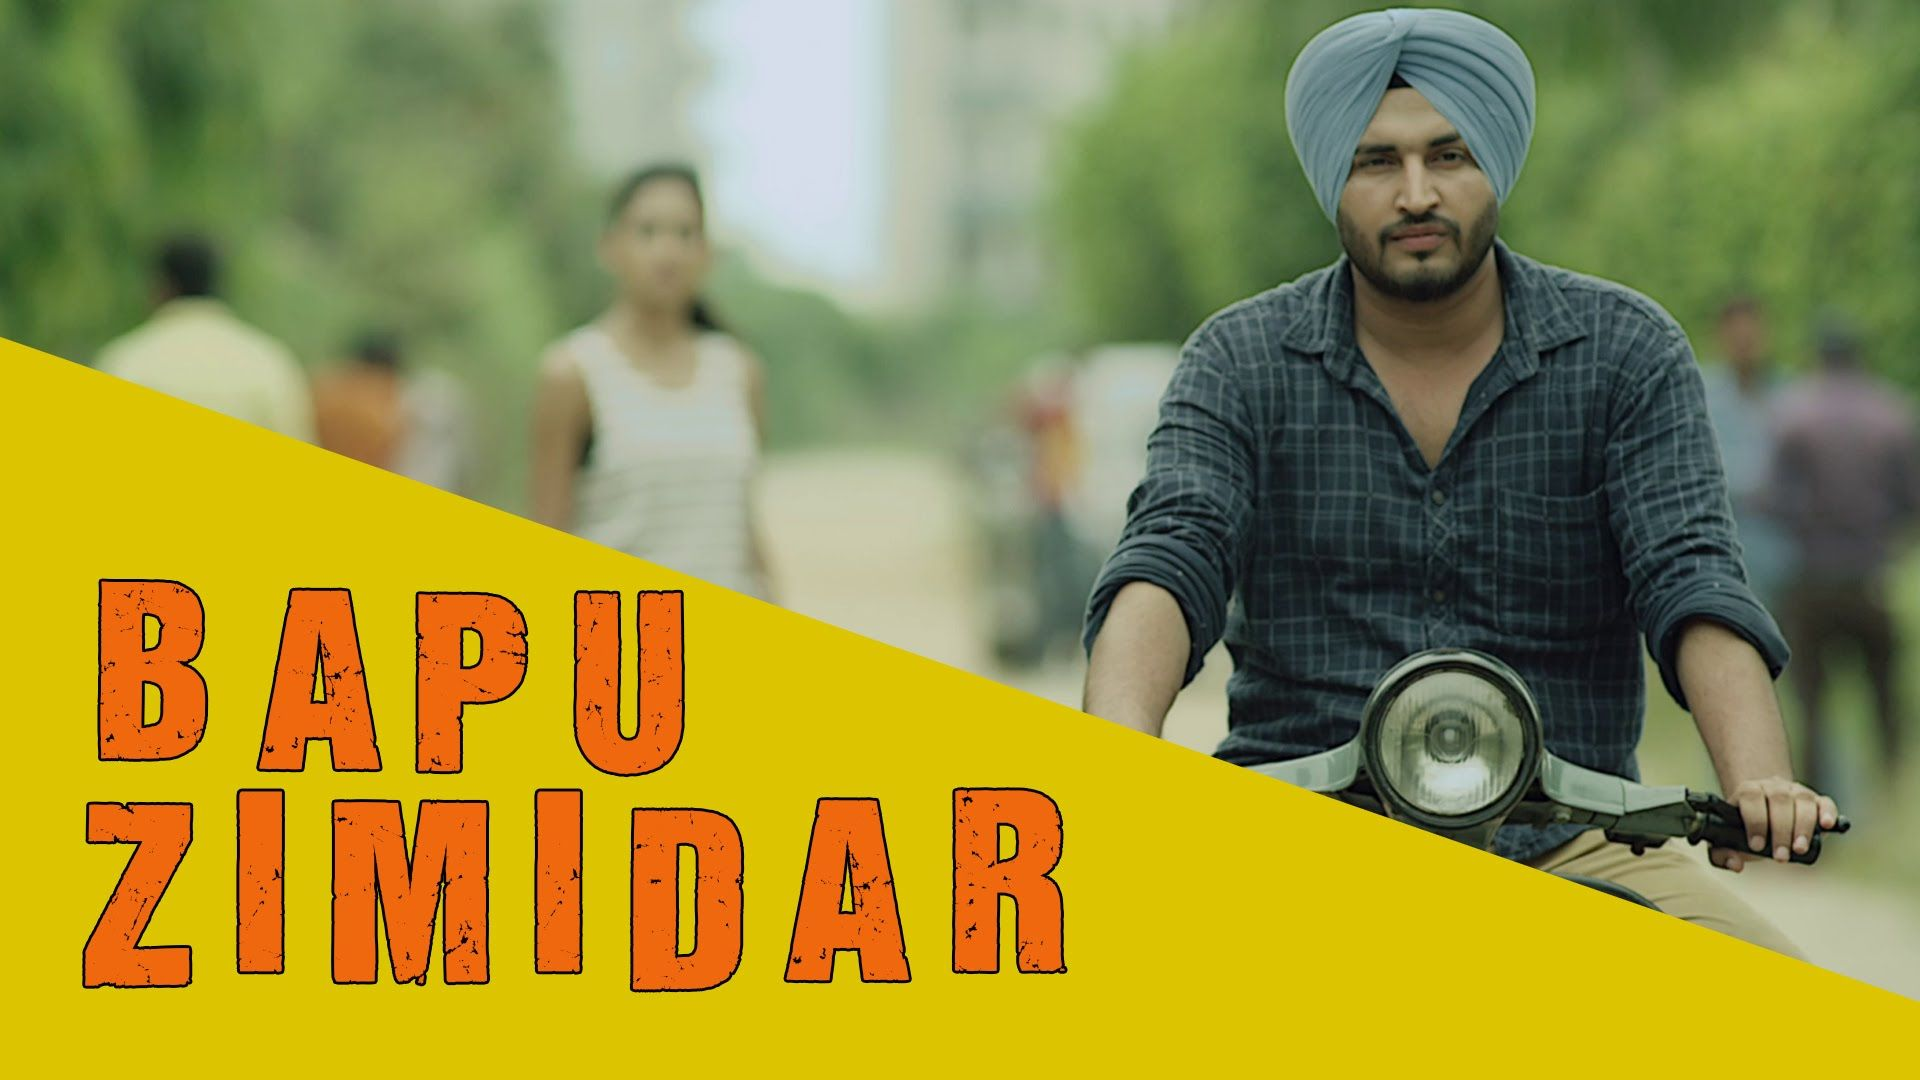 Ghaint gabru jassi gill mp3 song download